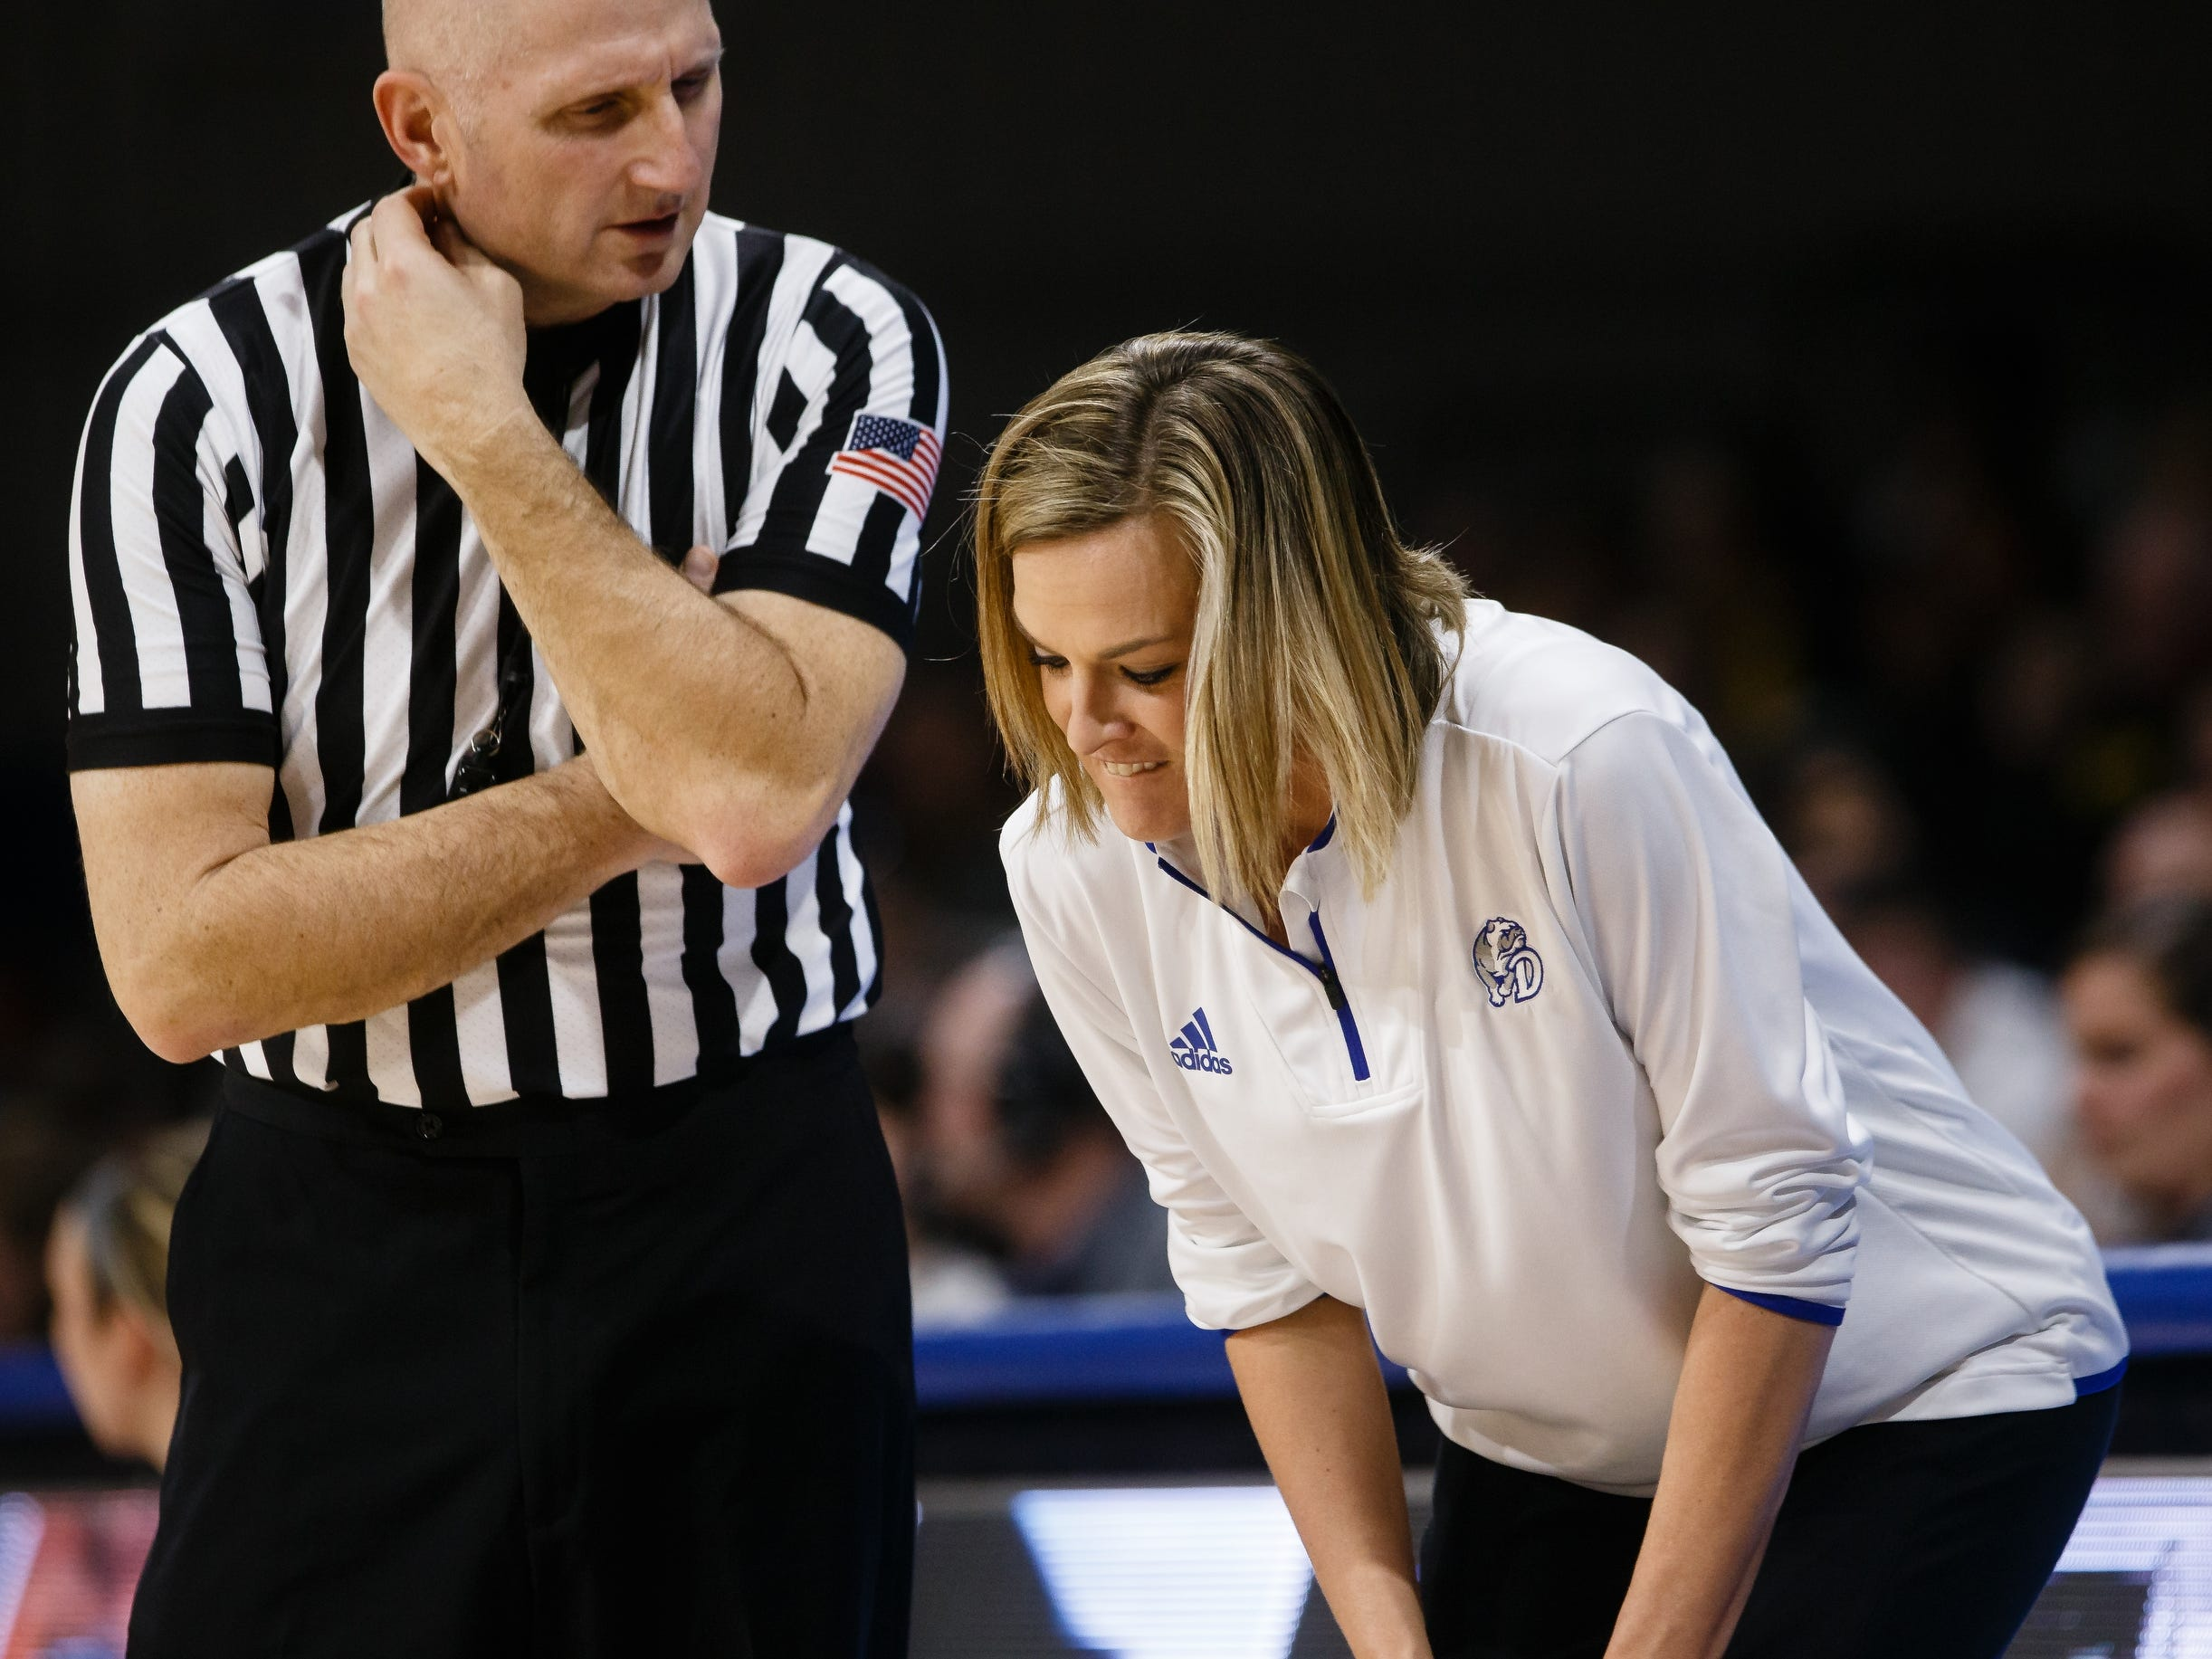 Drake head coach Jennie Baranczyk argues a call during their basketball game on Friday, Dec. 21, 2018, in Des Moines. Iowa would go on to defeat Drake 91-82.